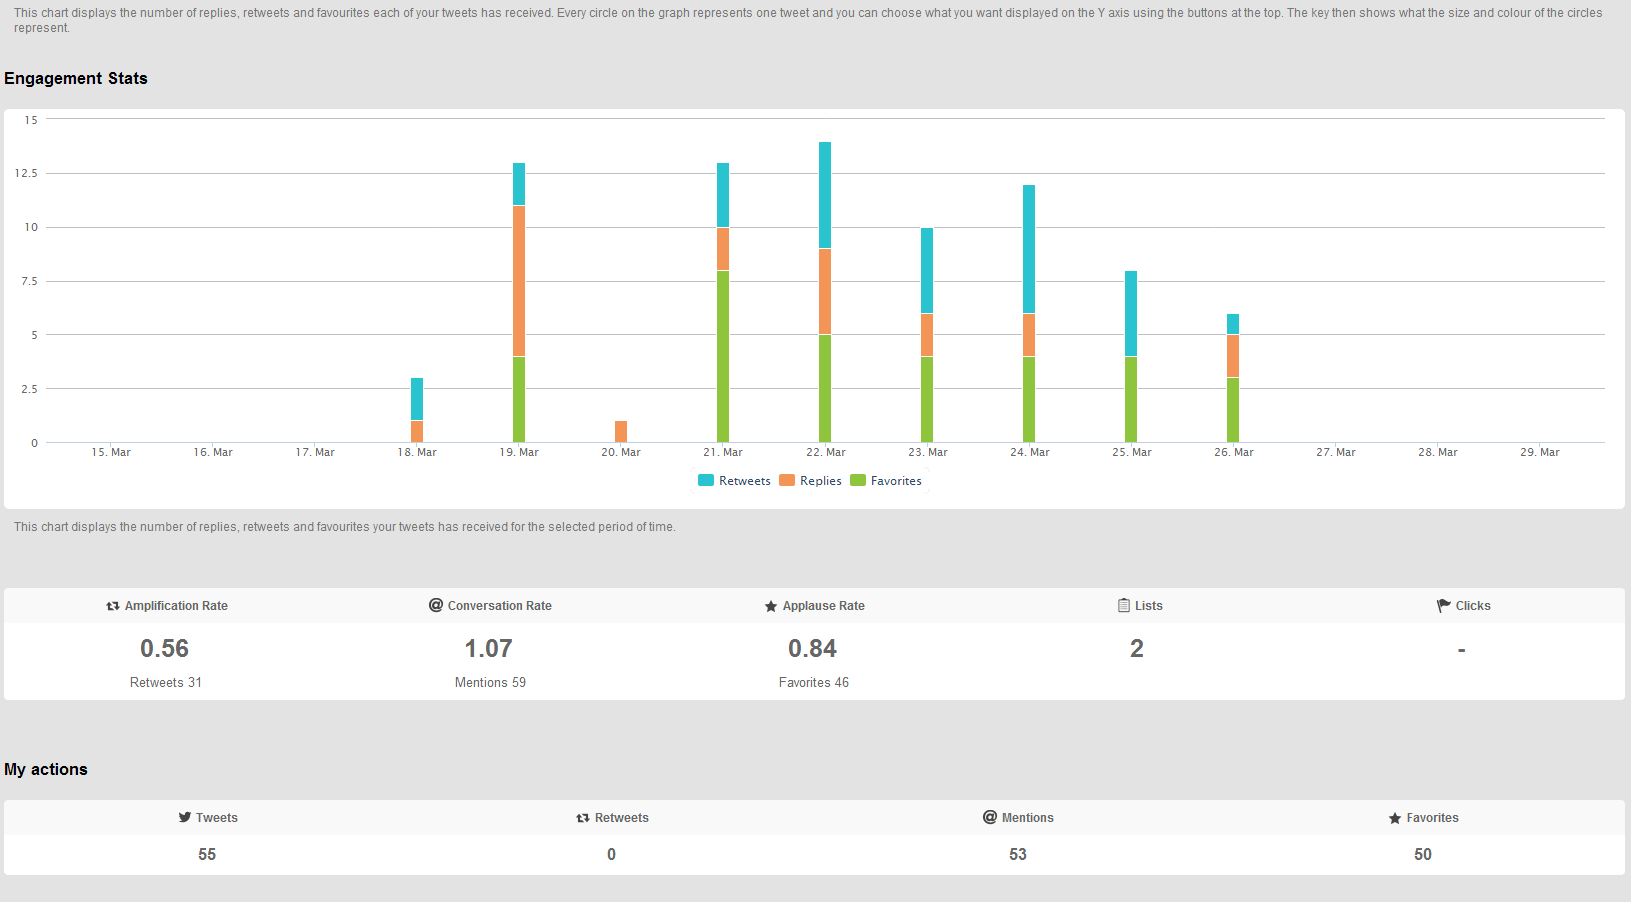 engagementstats18-26mar2014